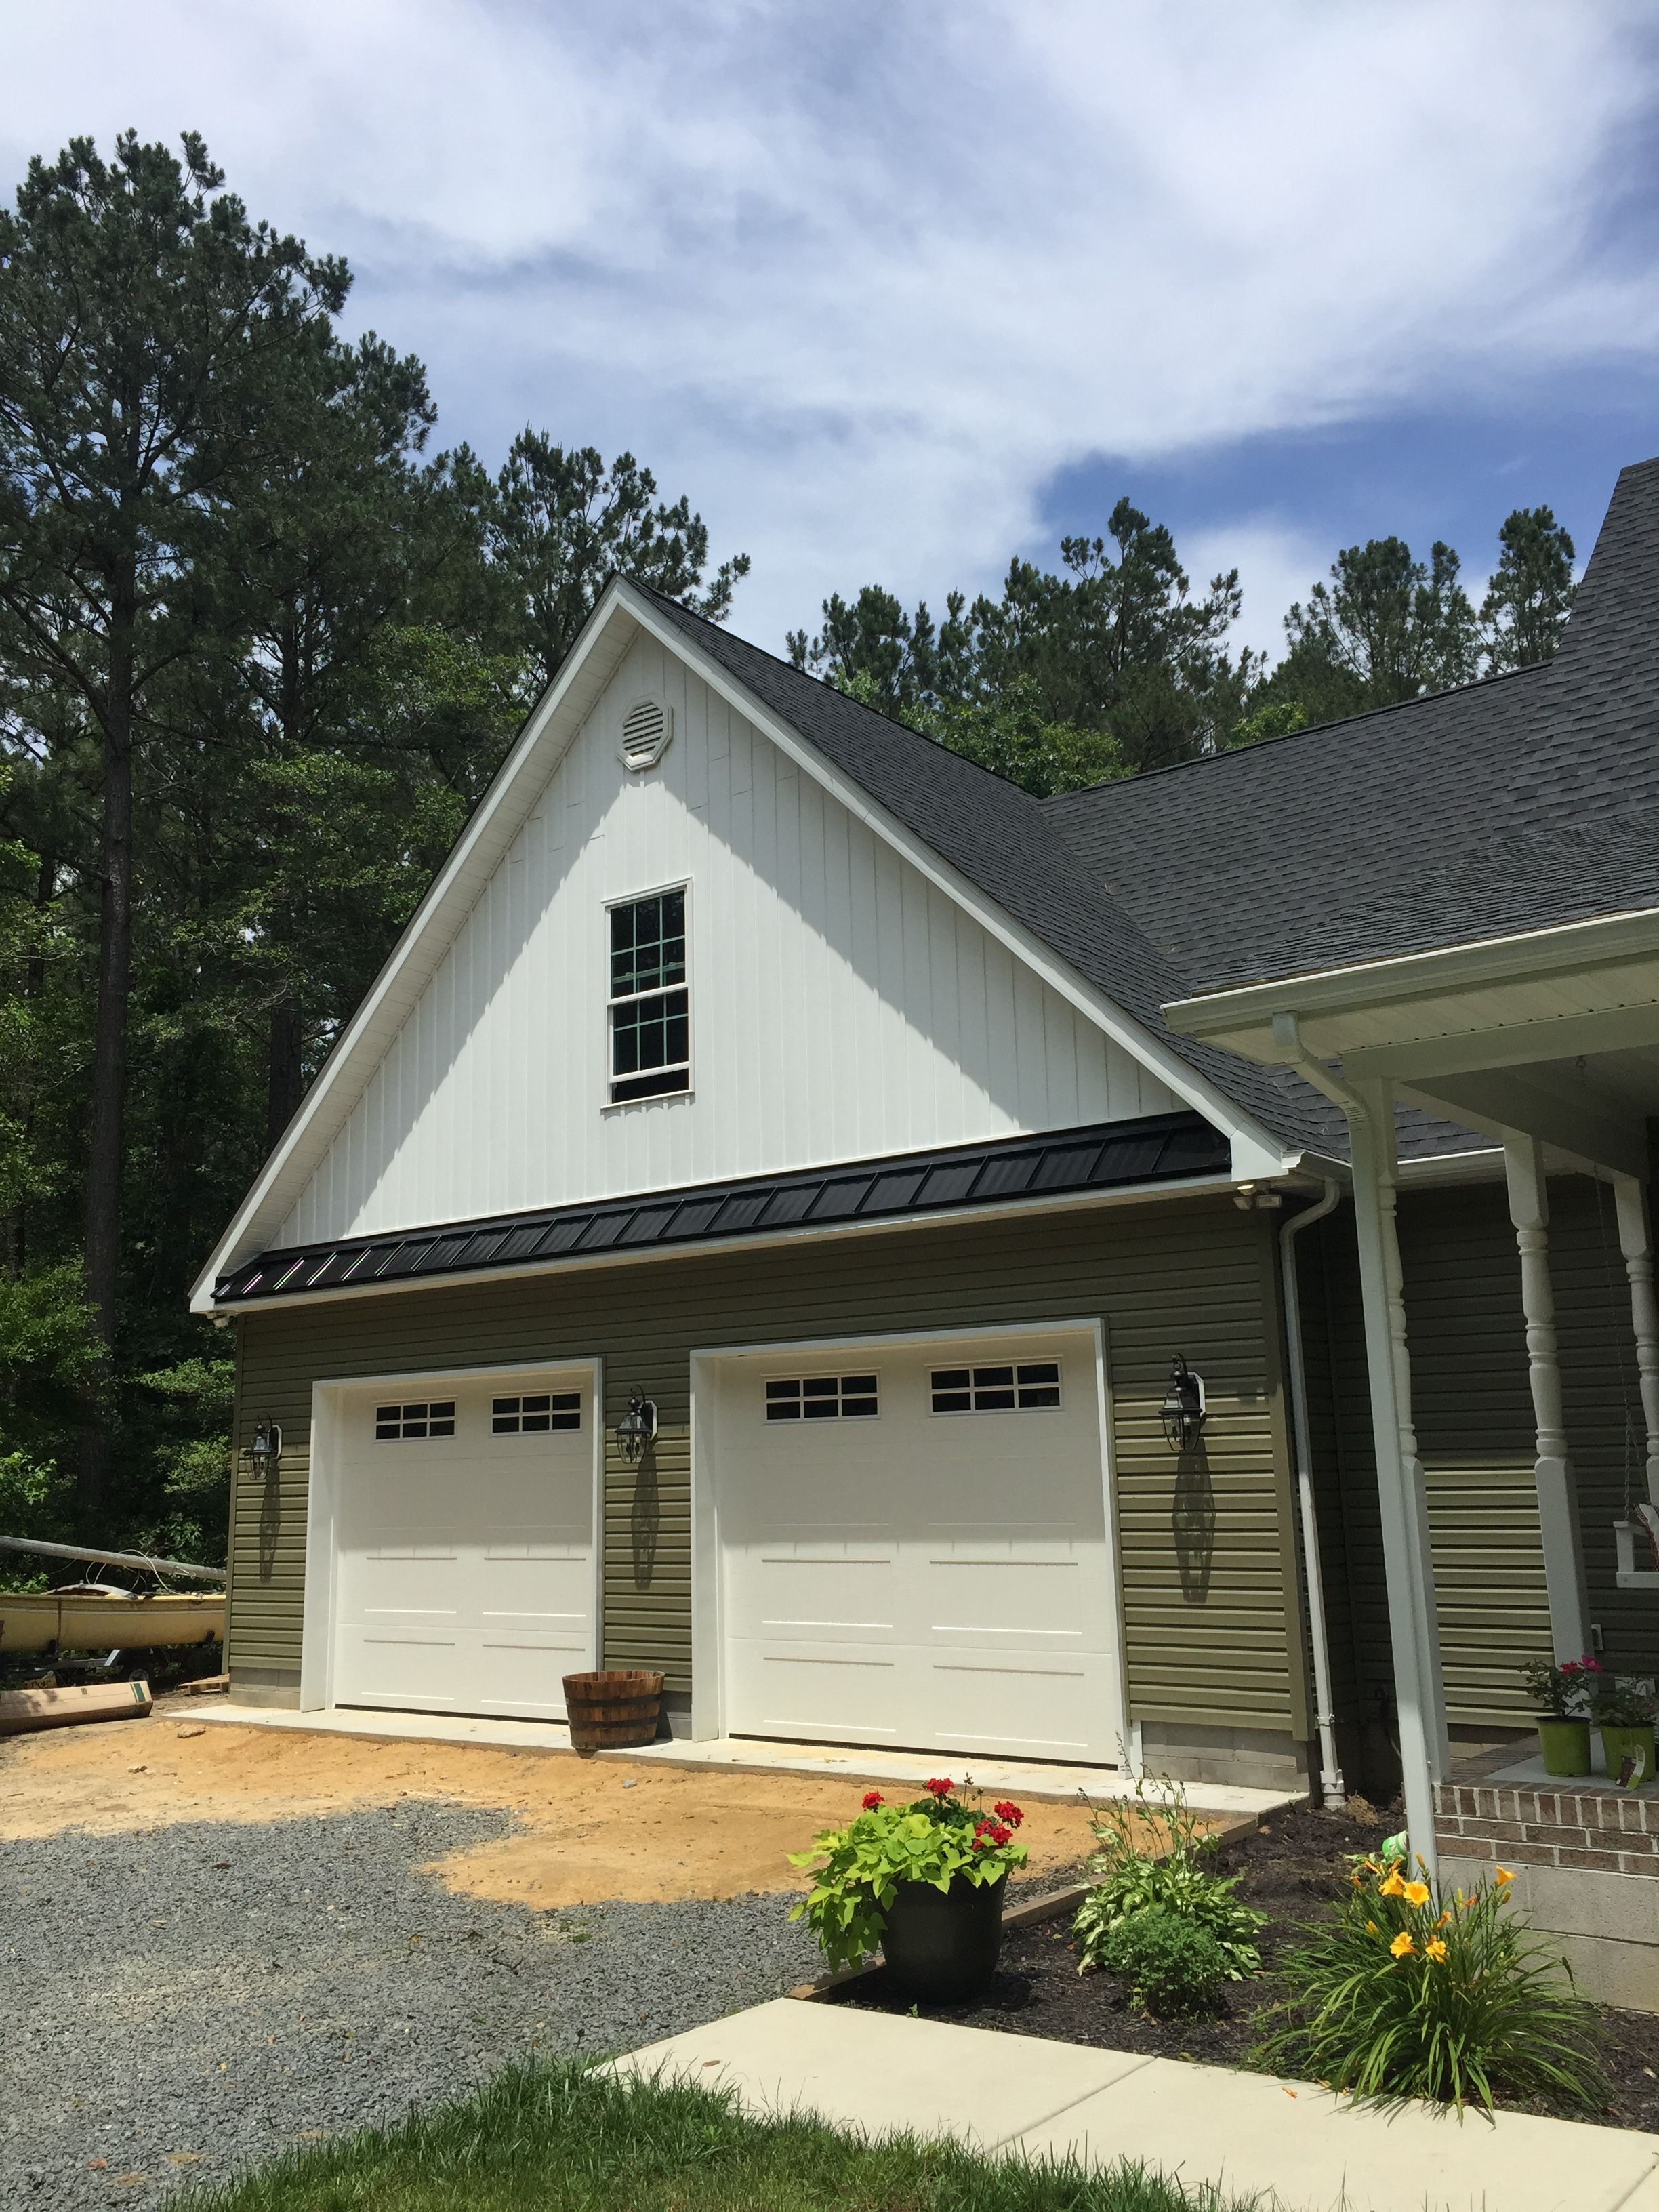 Garage Addition A 30x30 Garage Addition With A Bonus Room Above Accessed By The